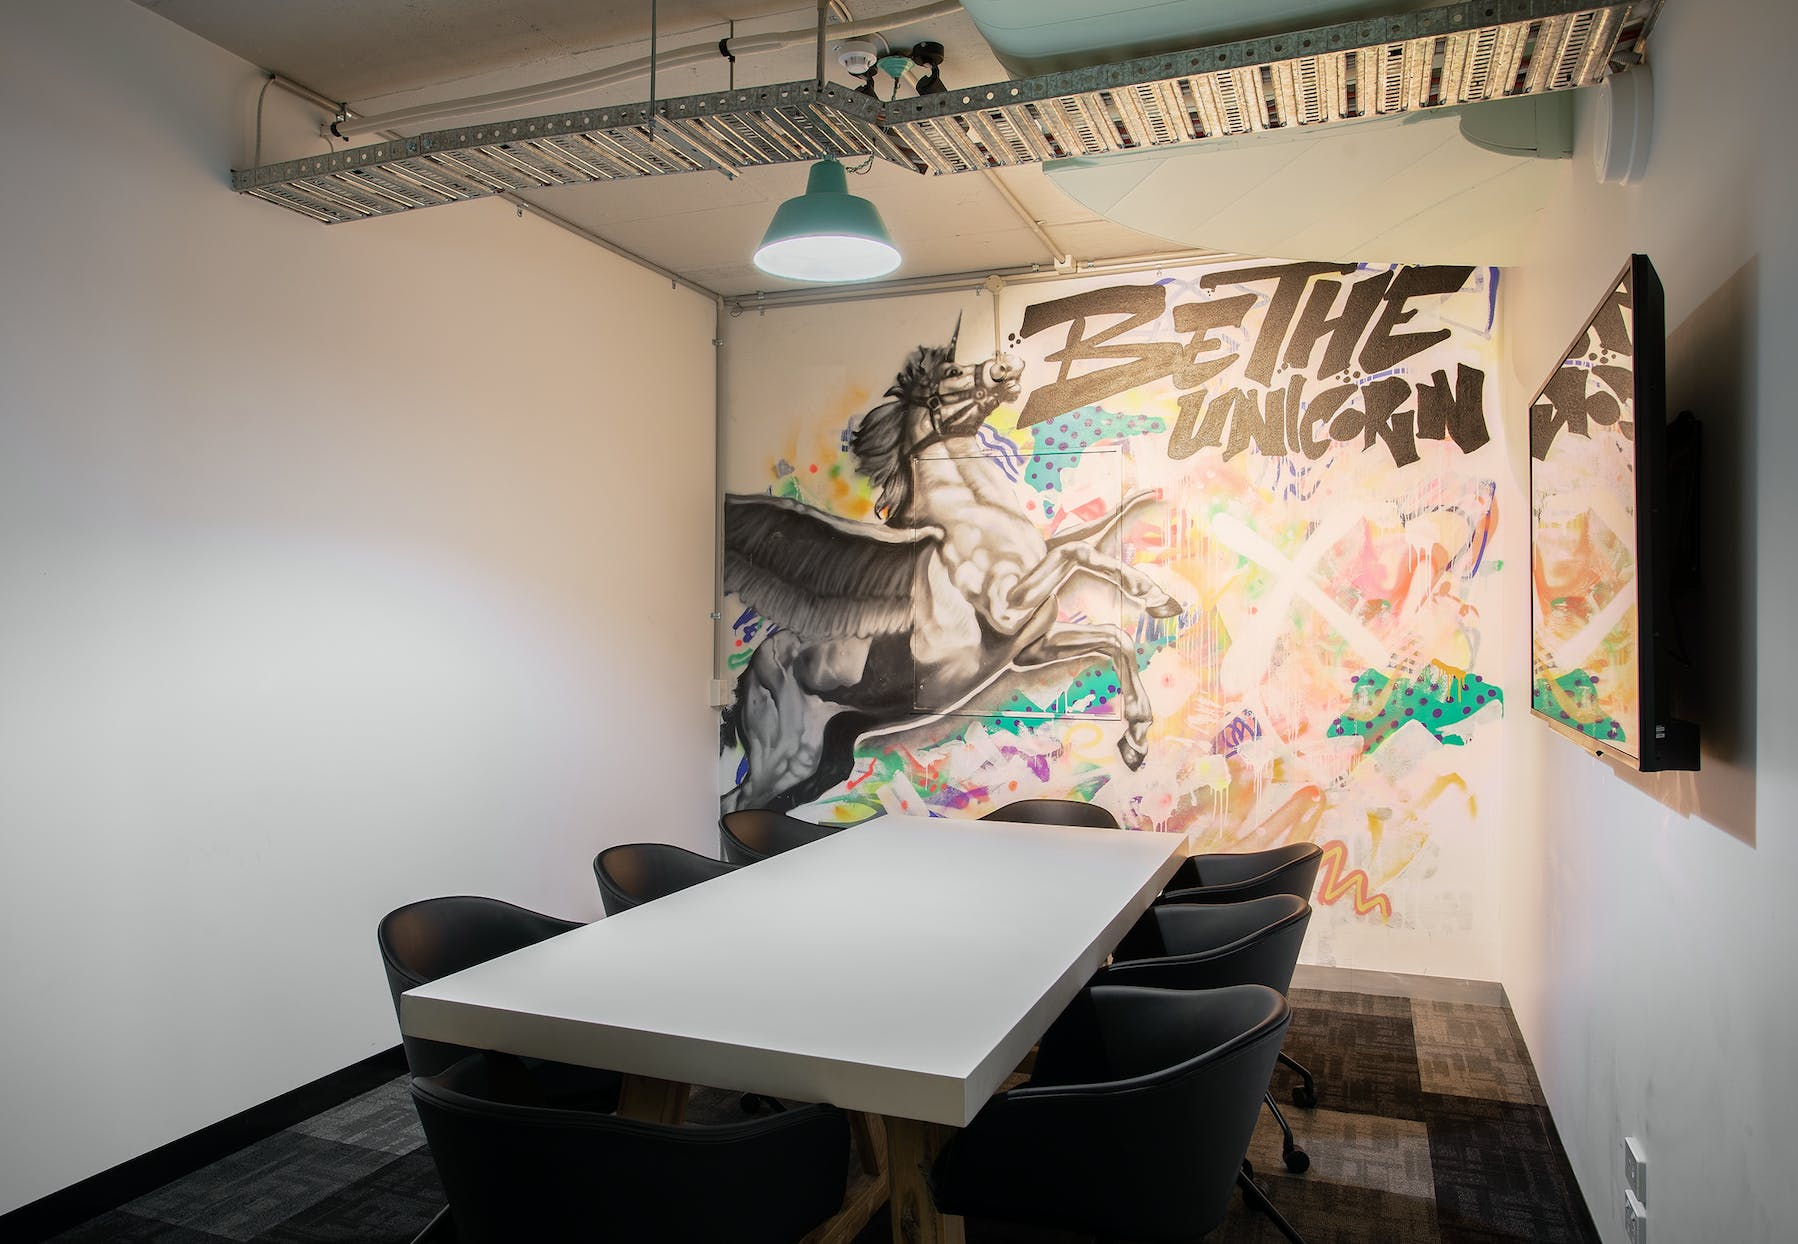 Unicorn Room, meeting room at Building X, Richmond, image 1